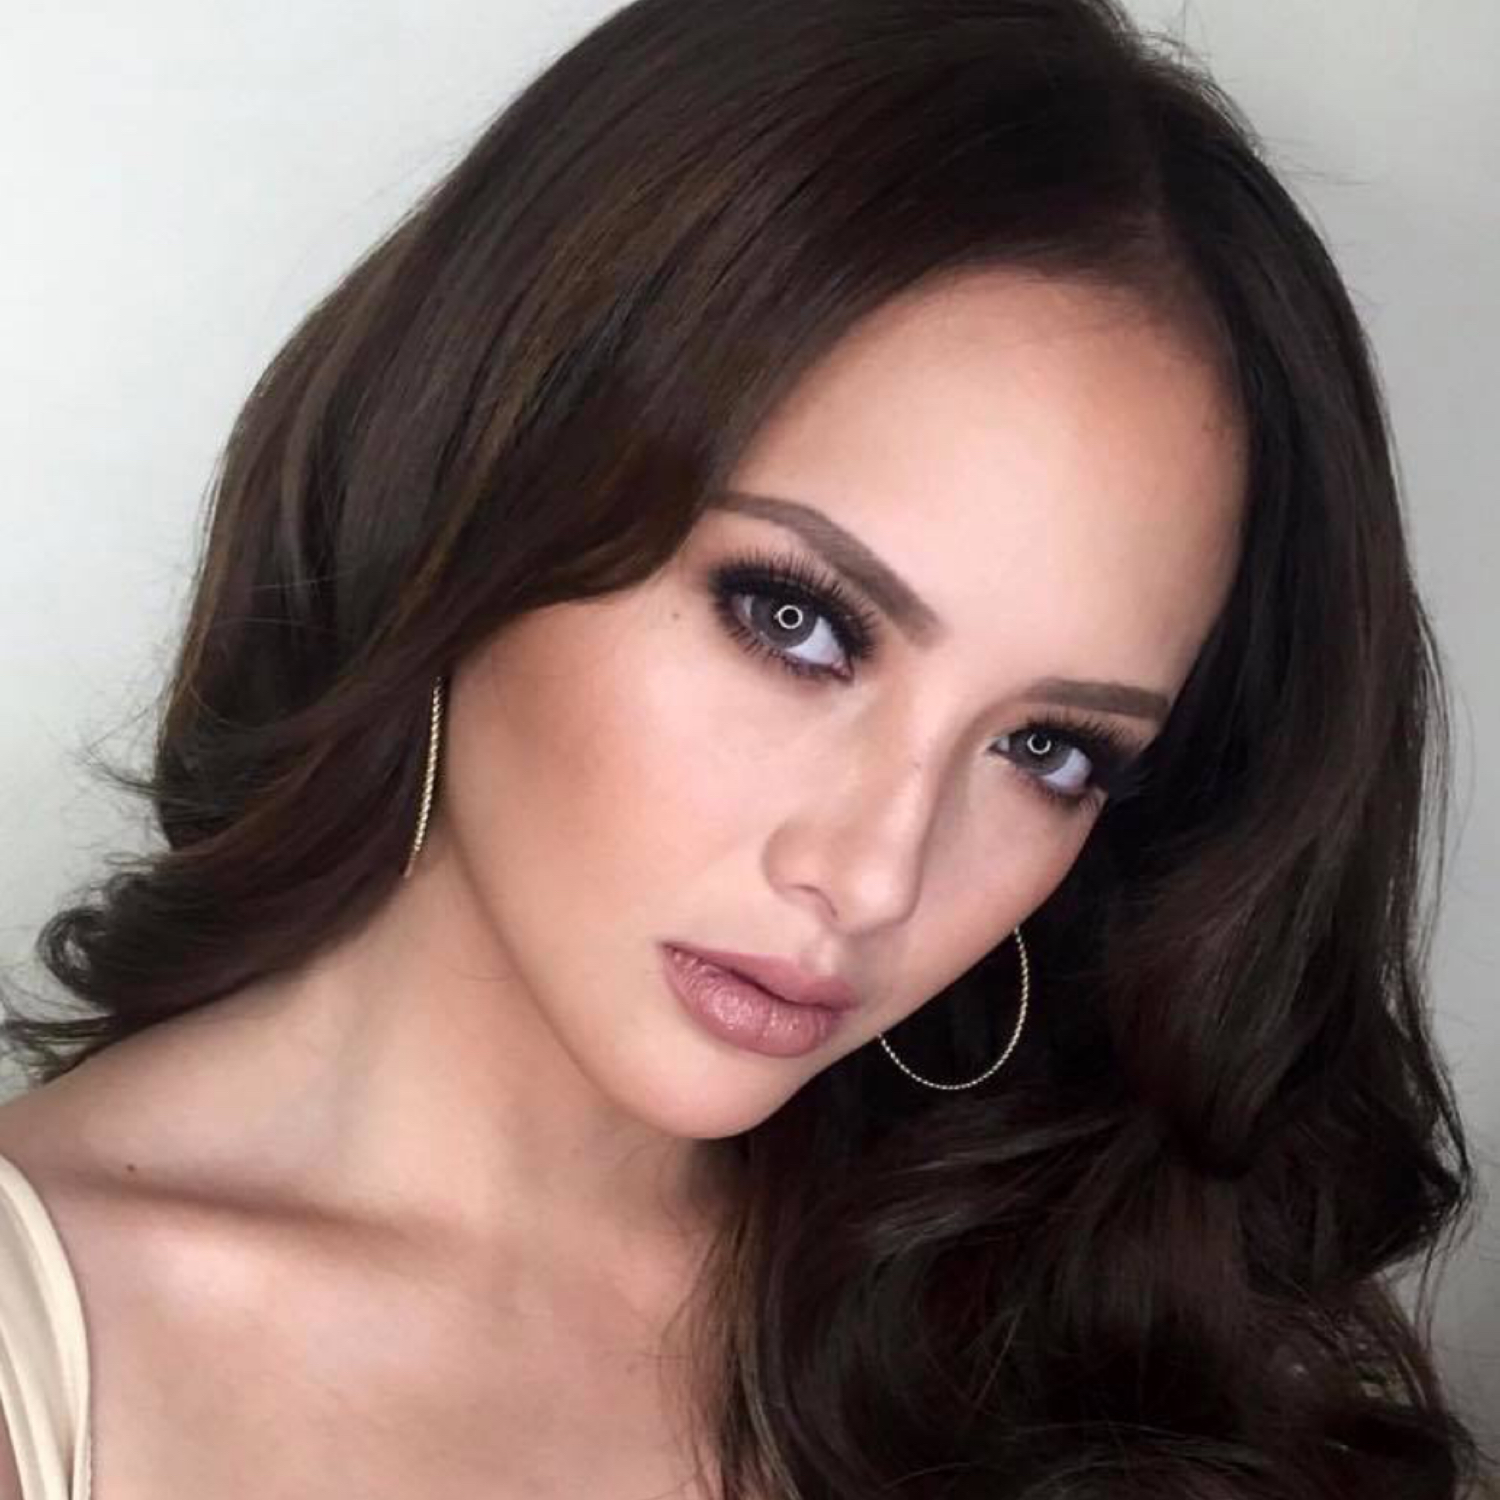 Young Ellen Adarna nudes (11 foto and video), Ass, Paparazzi, Boobs, bra 2018